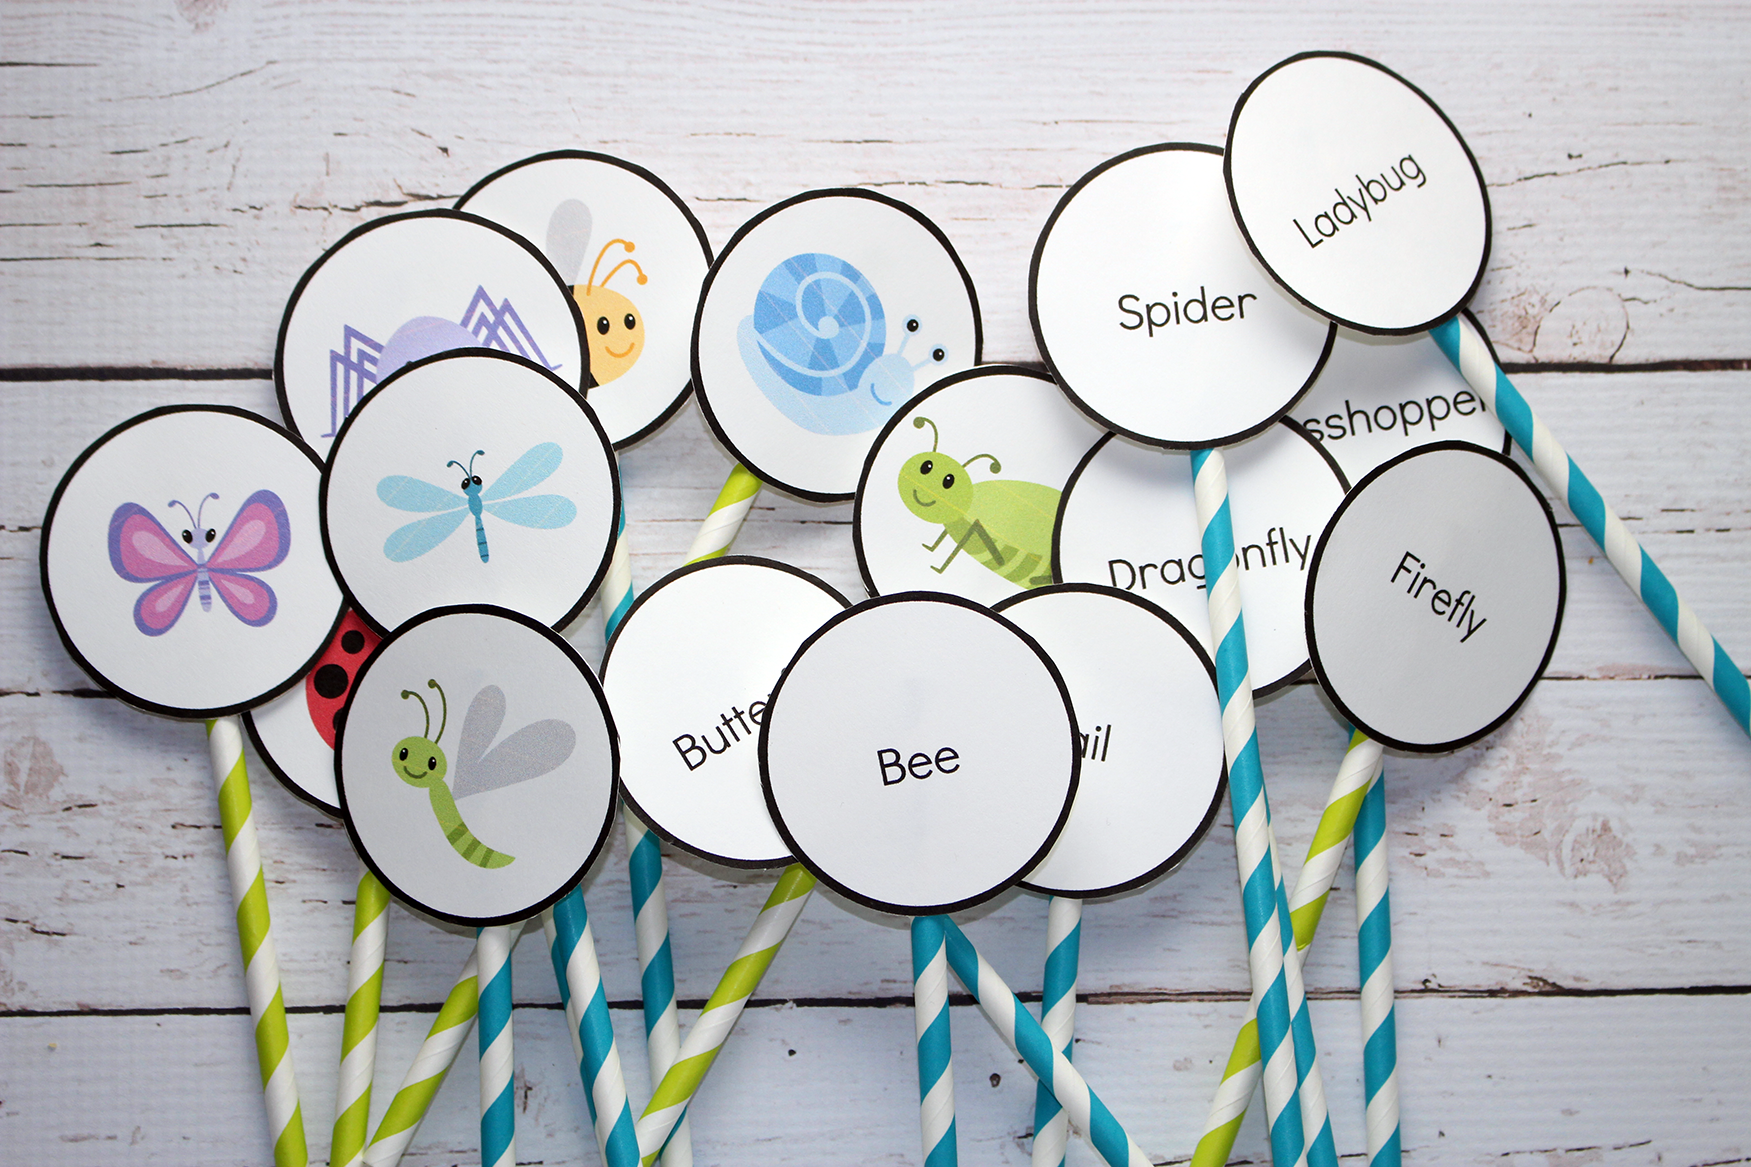 Fun Pop Up Word and Photo Association Game + FREE Printable